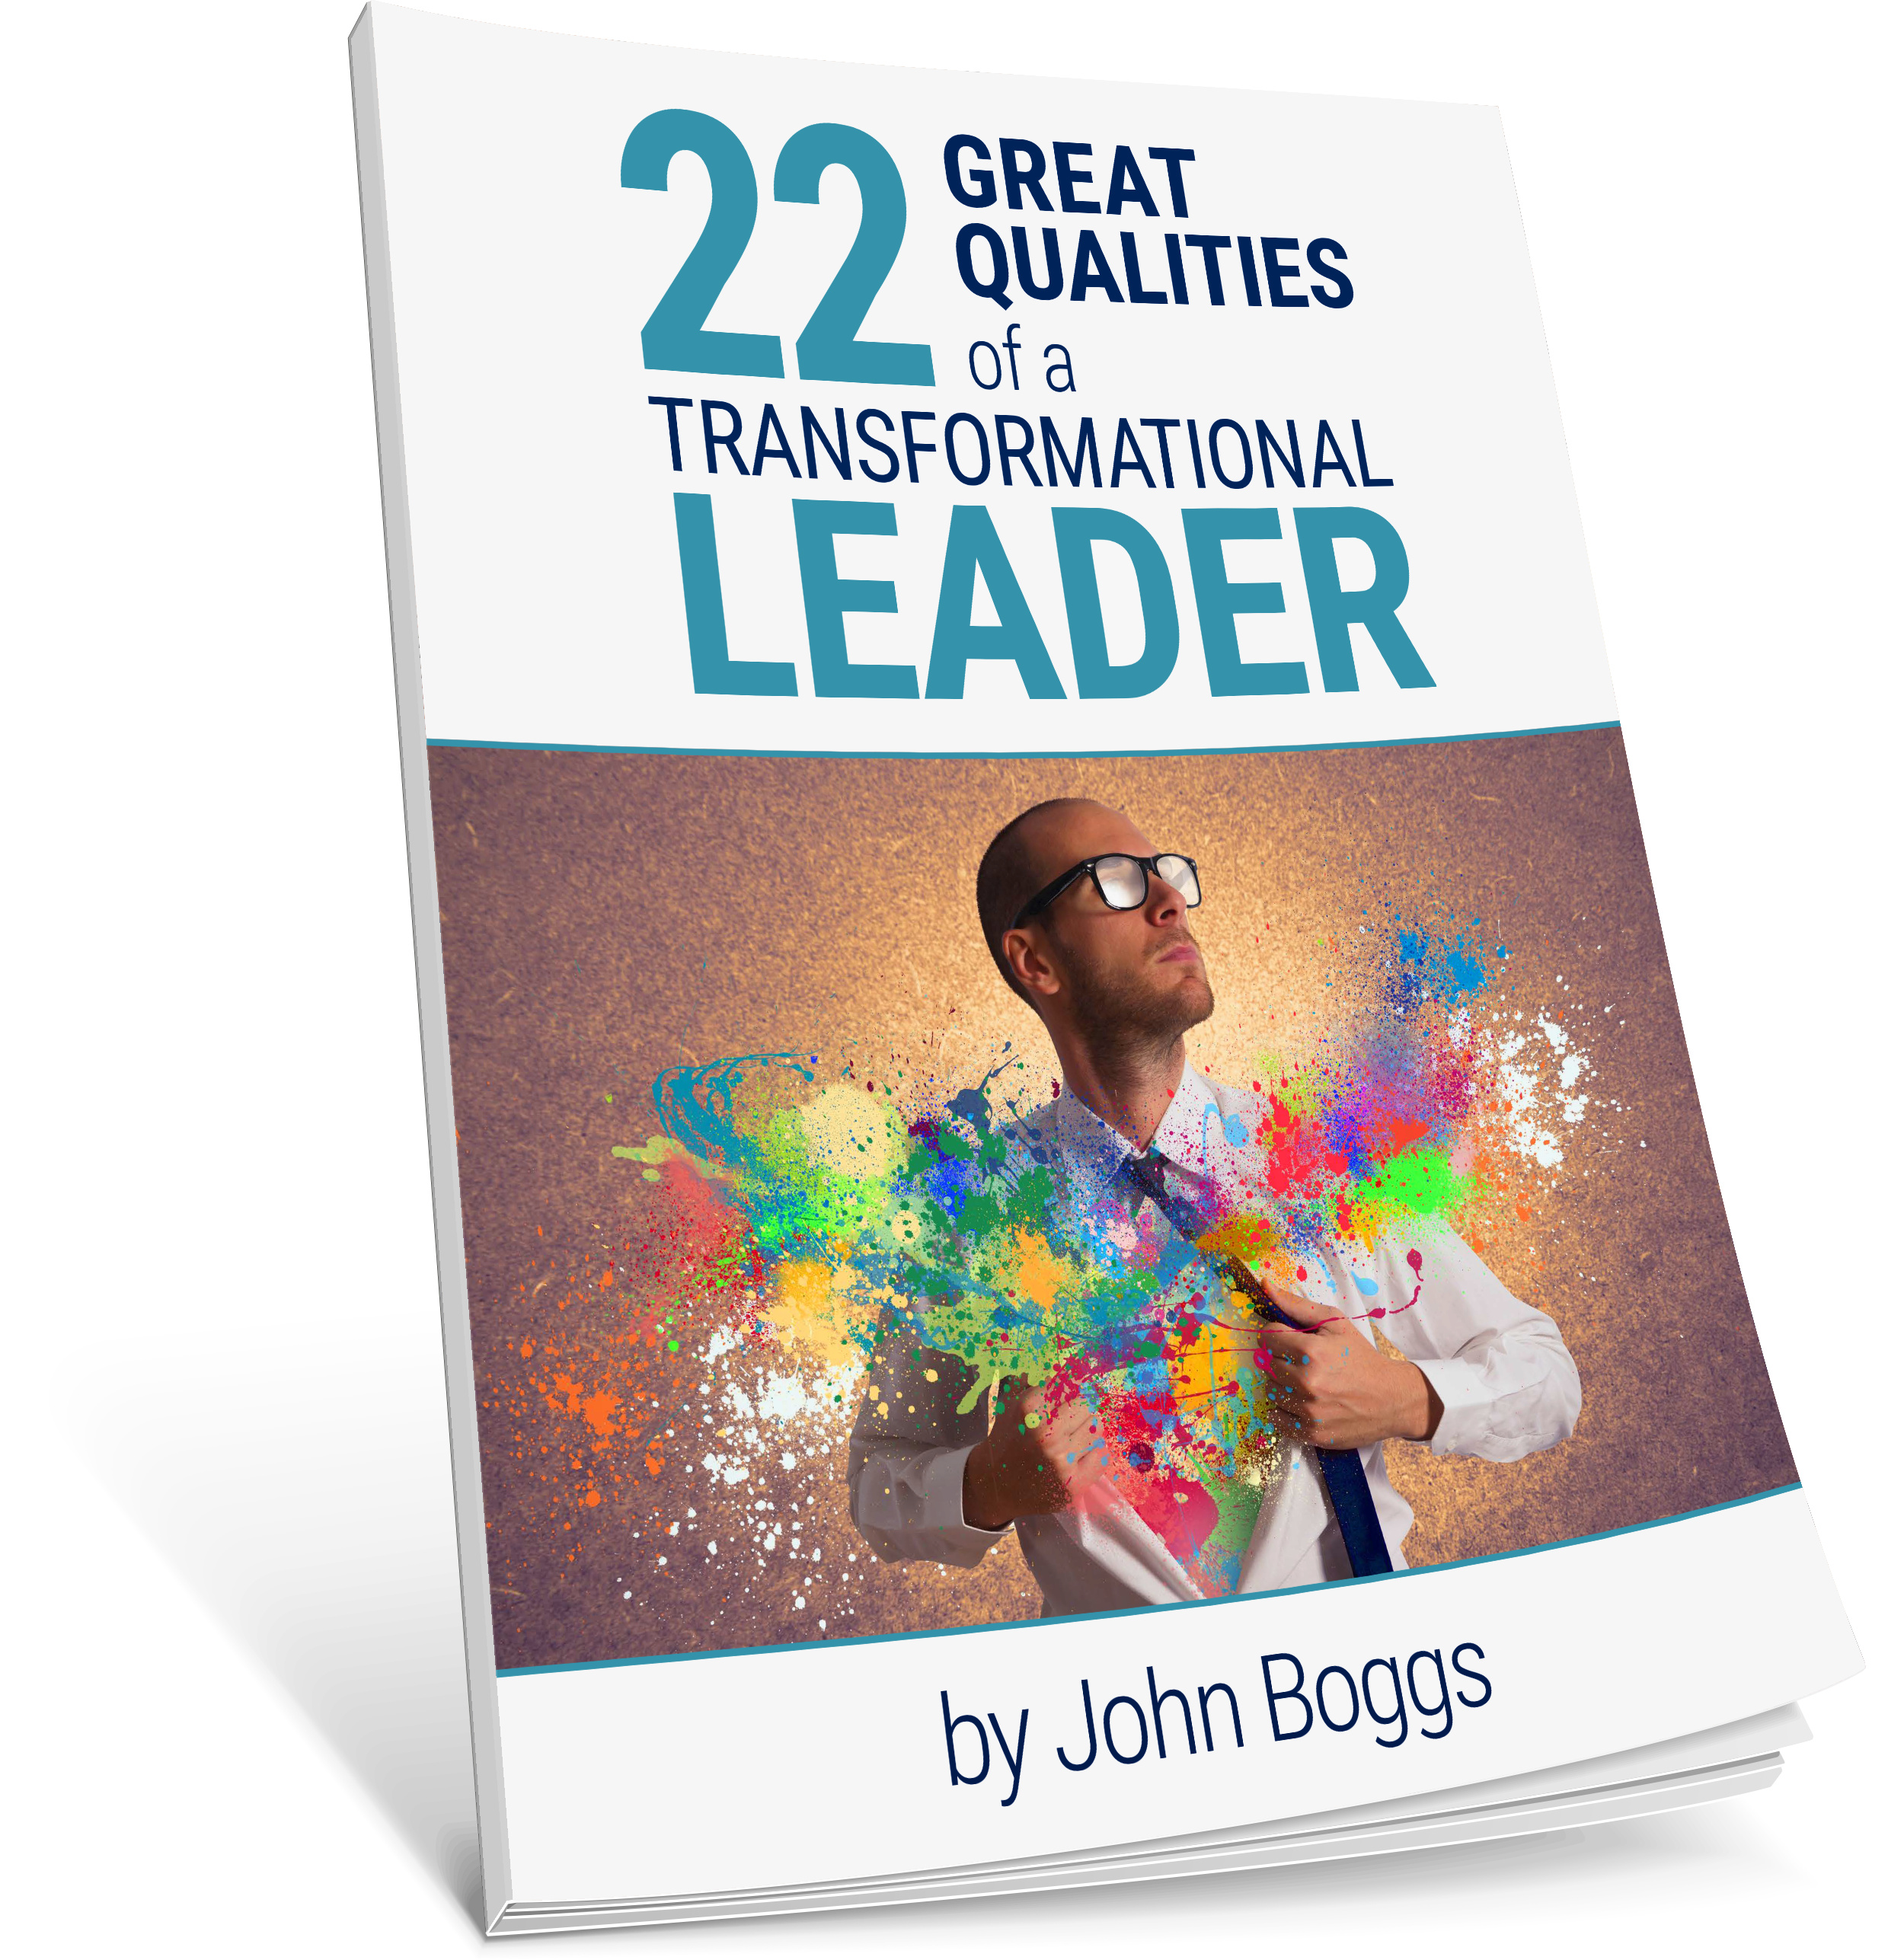 eBookMockup-22GreatLeadershipQualities%20%285%29.png